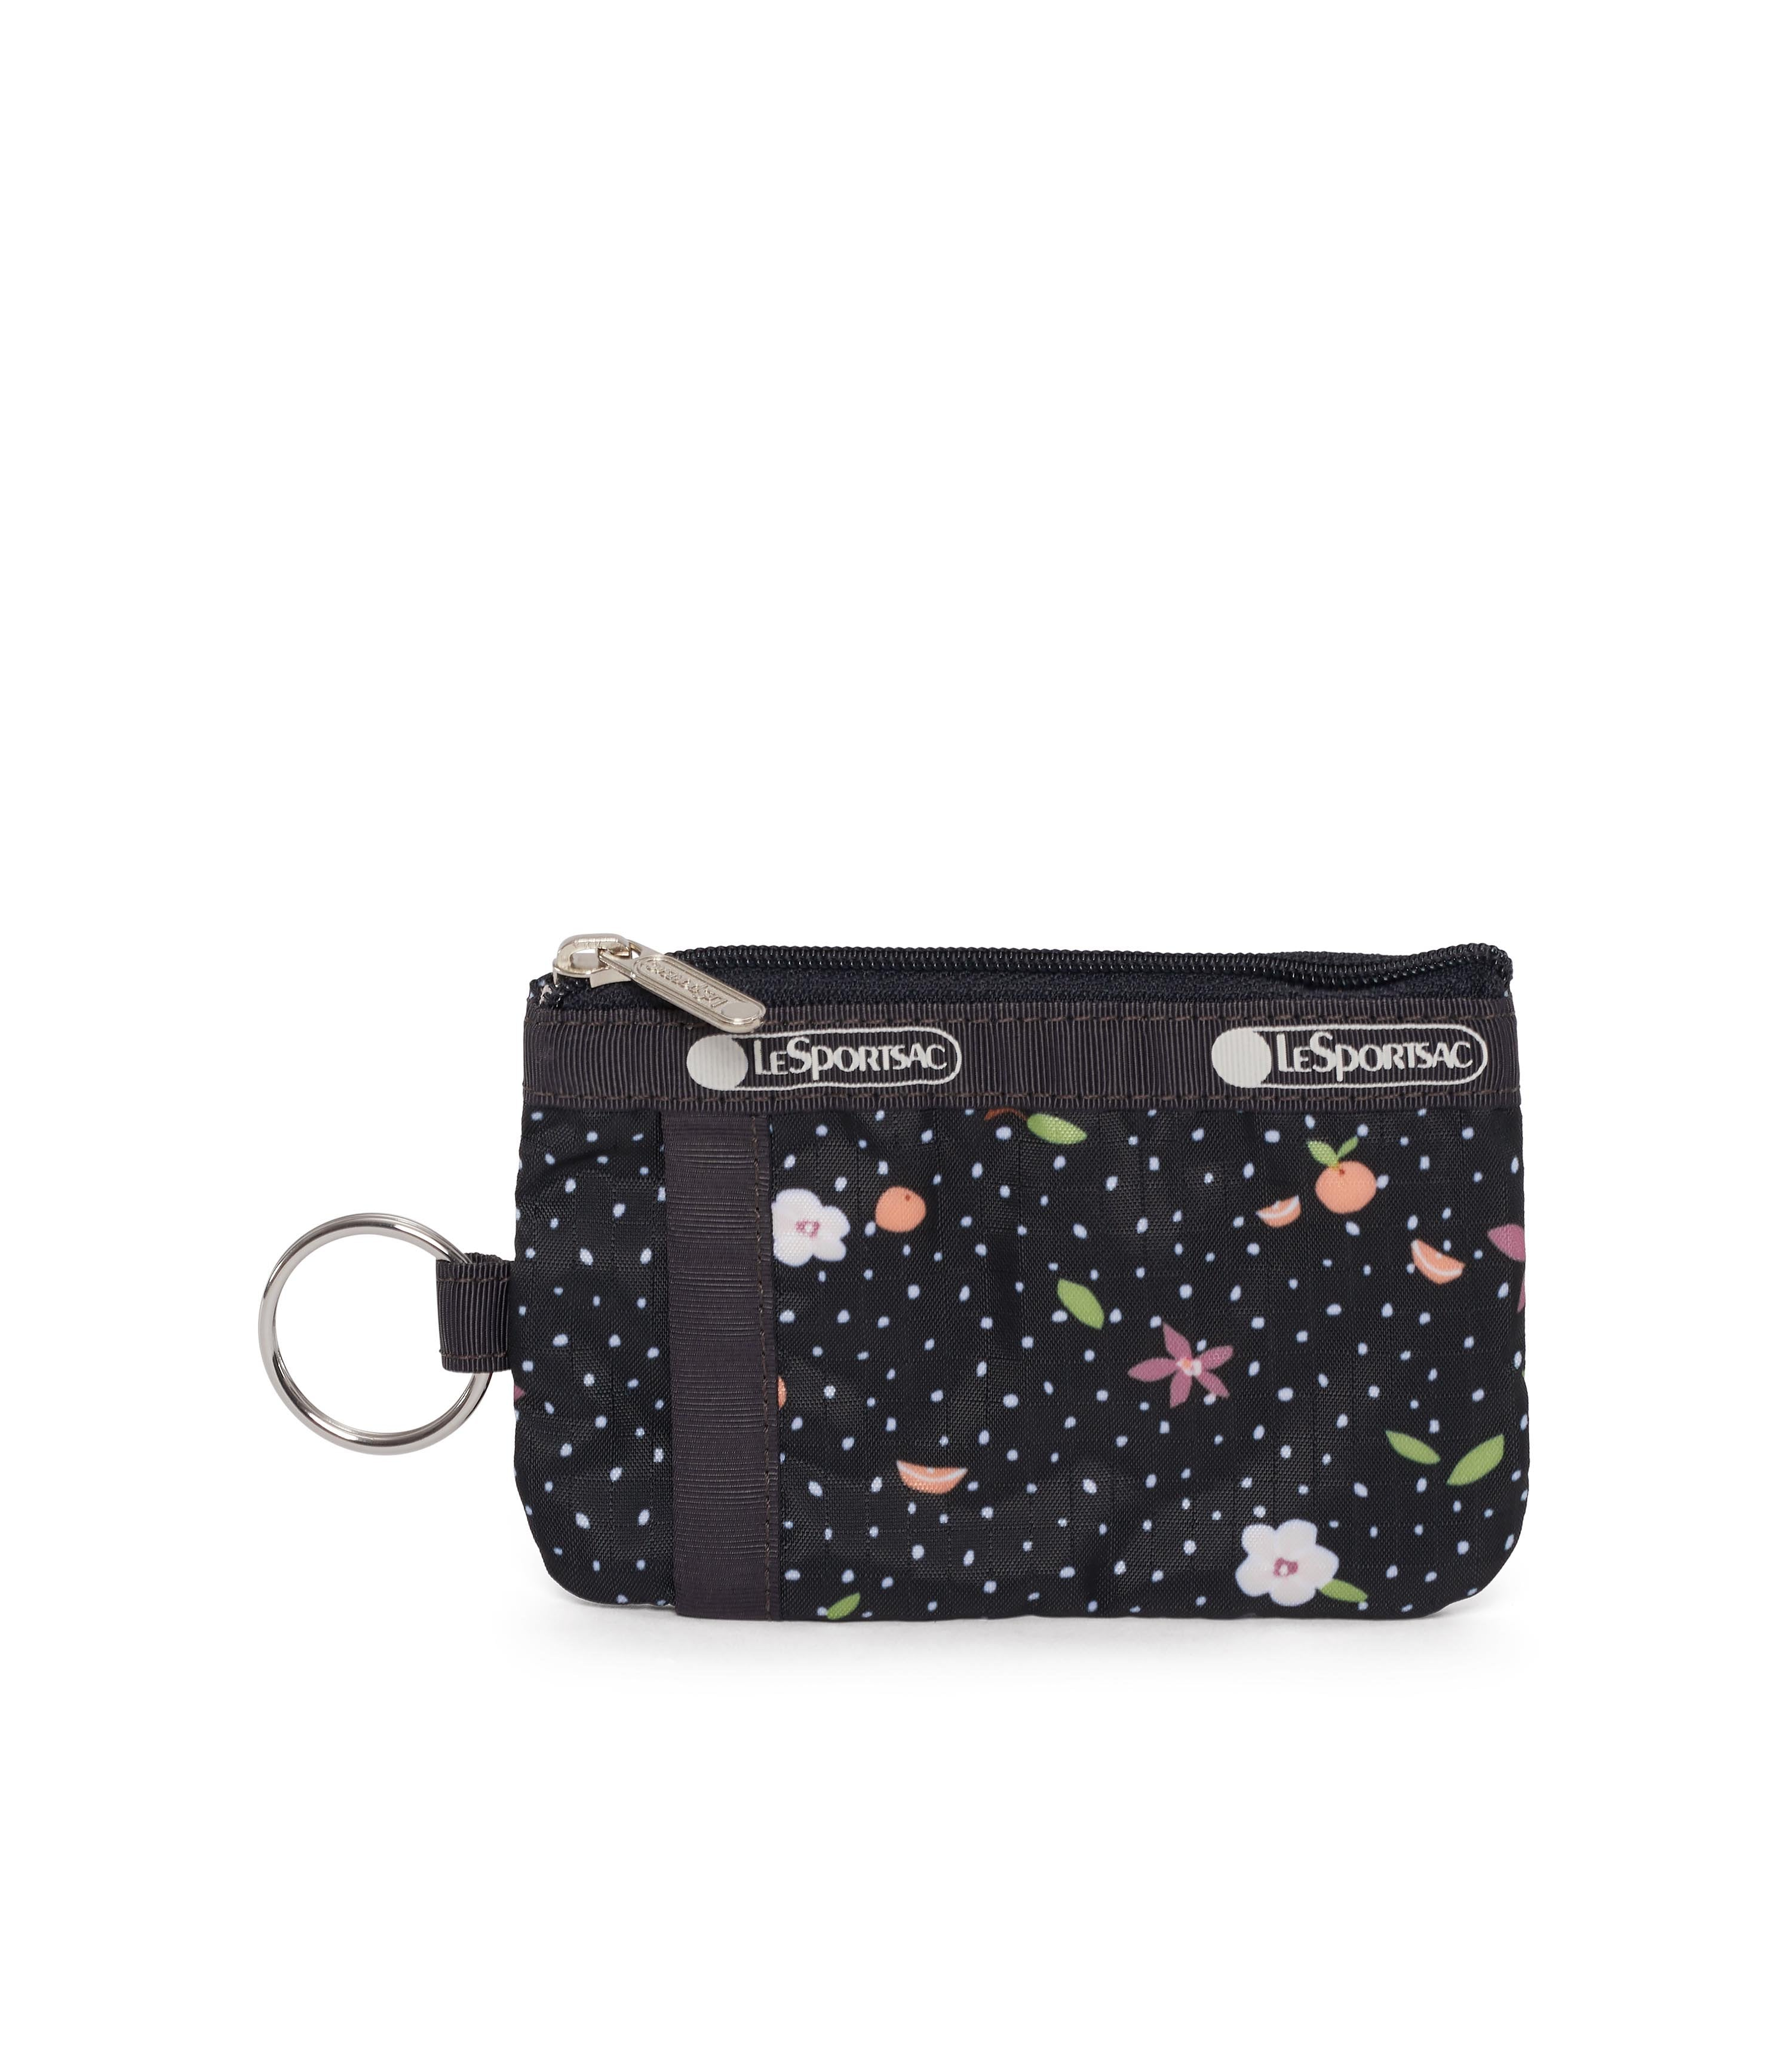 LeSportsac - ID Card Case - Accessories - Fruity Petals print